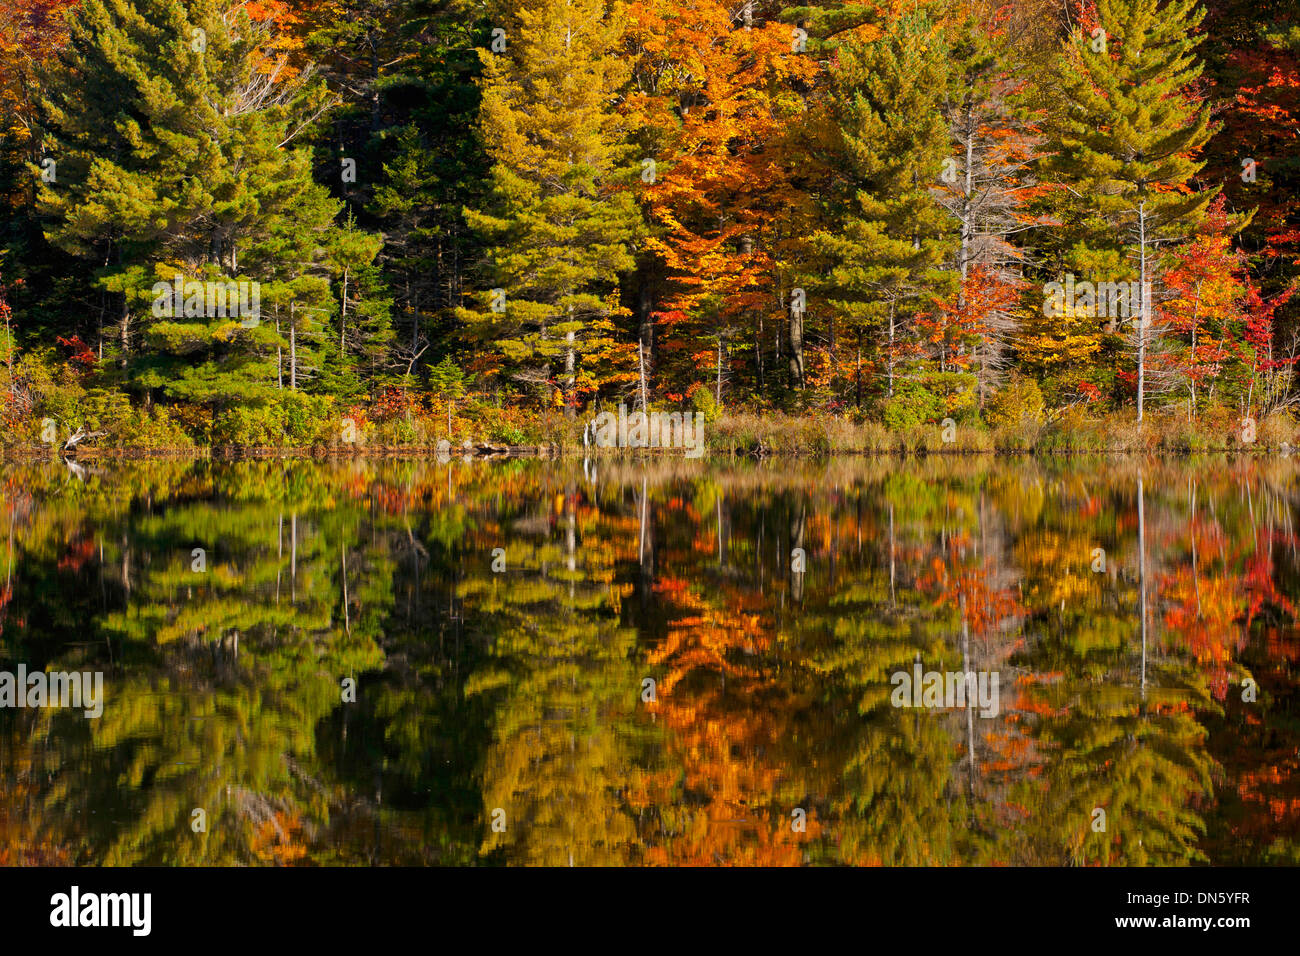 Forest being reflected in beaver pond in autumn, Eastern Townships, West Bolton, Quebec, Canada - Stock Image